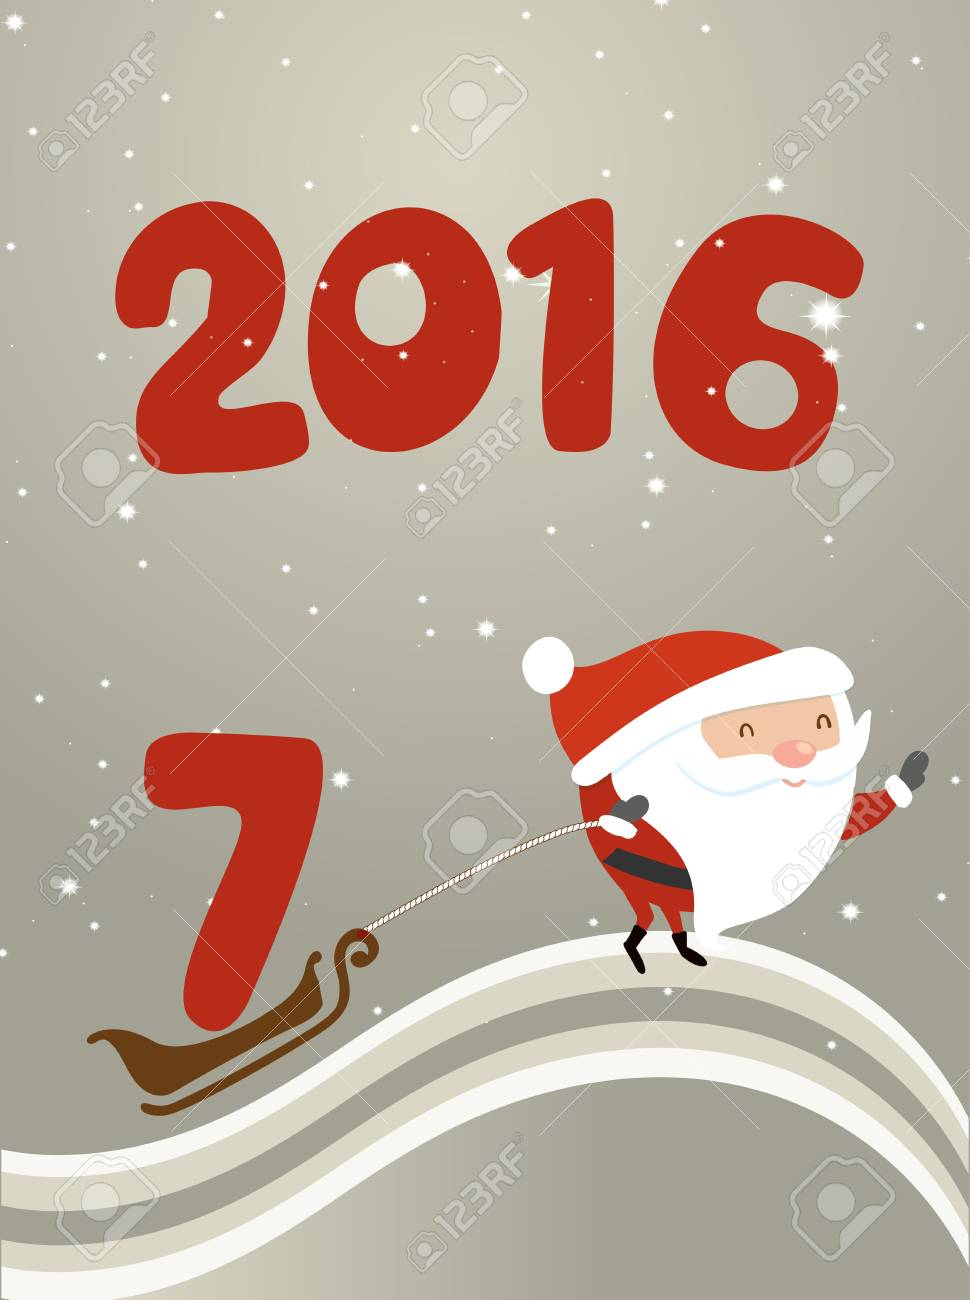 Santa Claus Is Driven By The Sleigh Number Seven Illustration